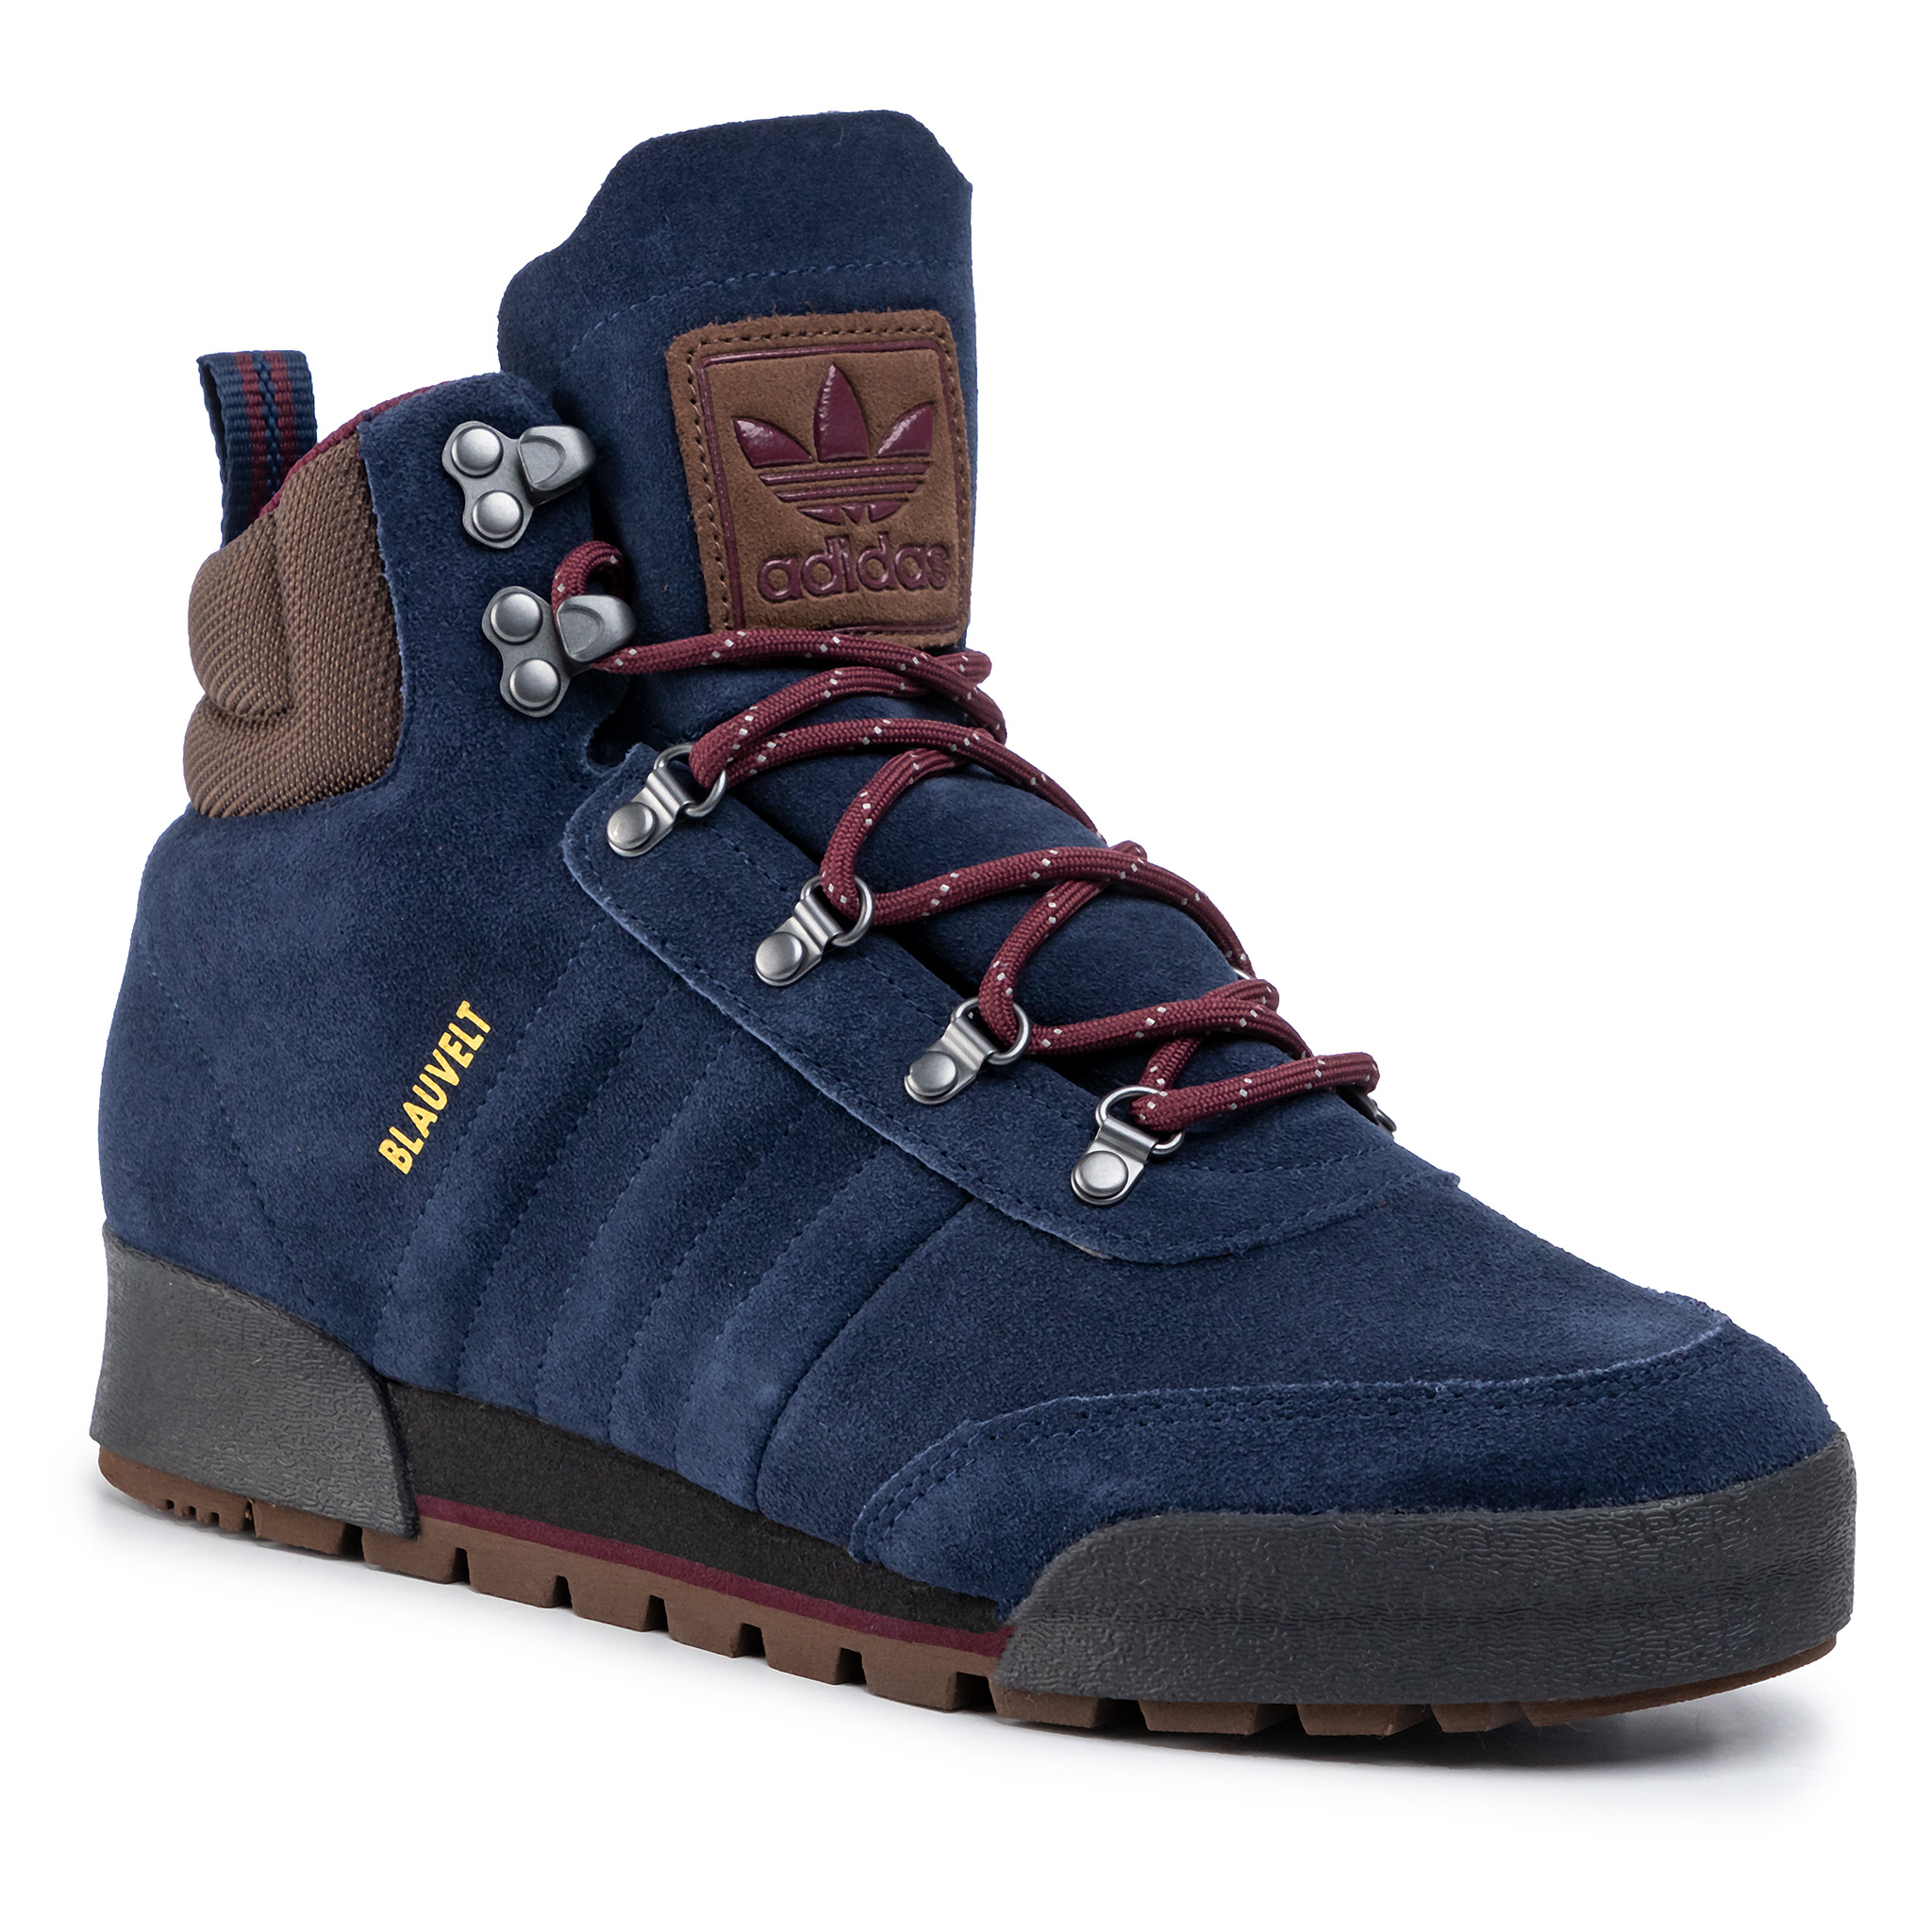 Batai adidas - Jake Boot 2.0 EE6207 Conavy/Maroon/Brown